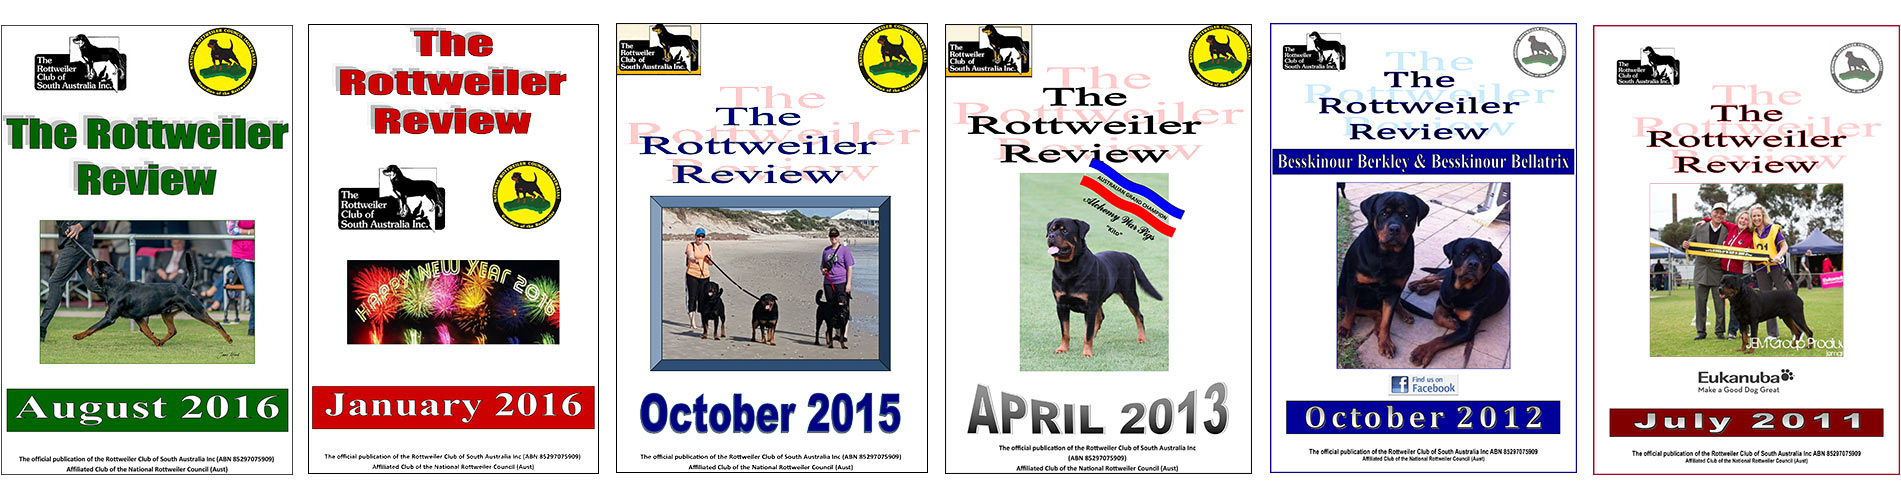 The Rottweiler Review